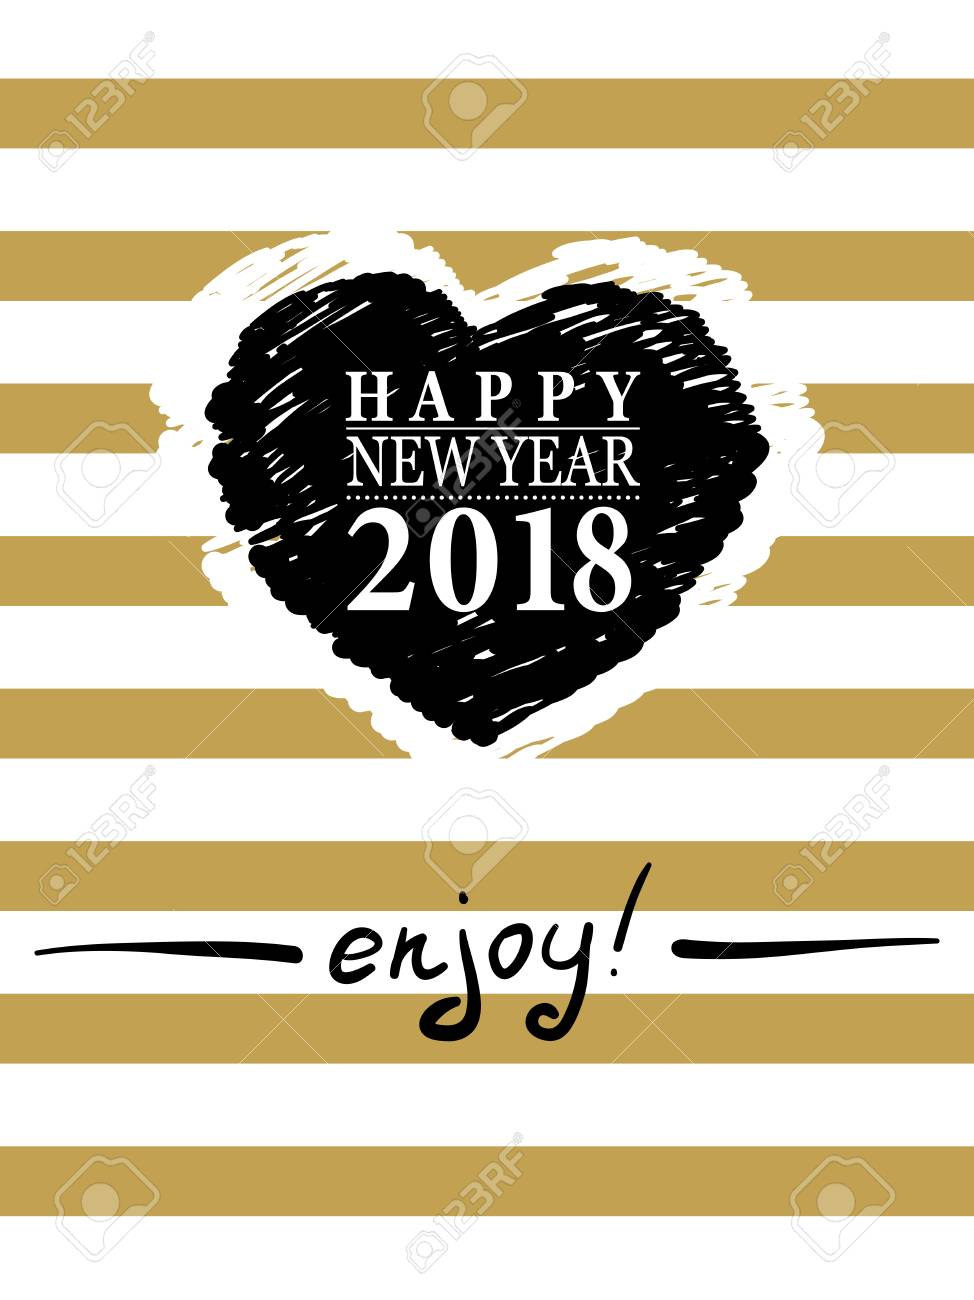 2018 happy new year card or background trendy style with hand lettering words